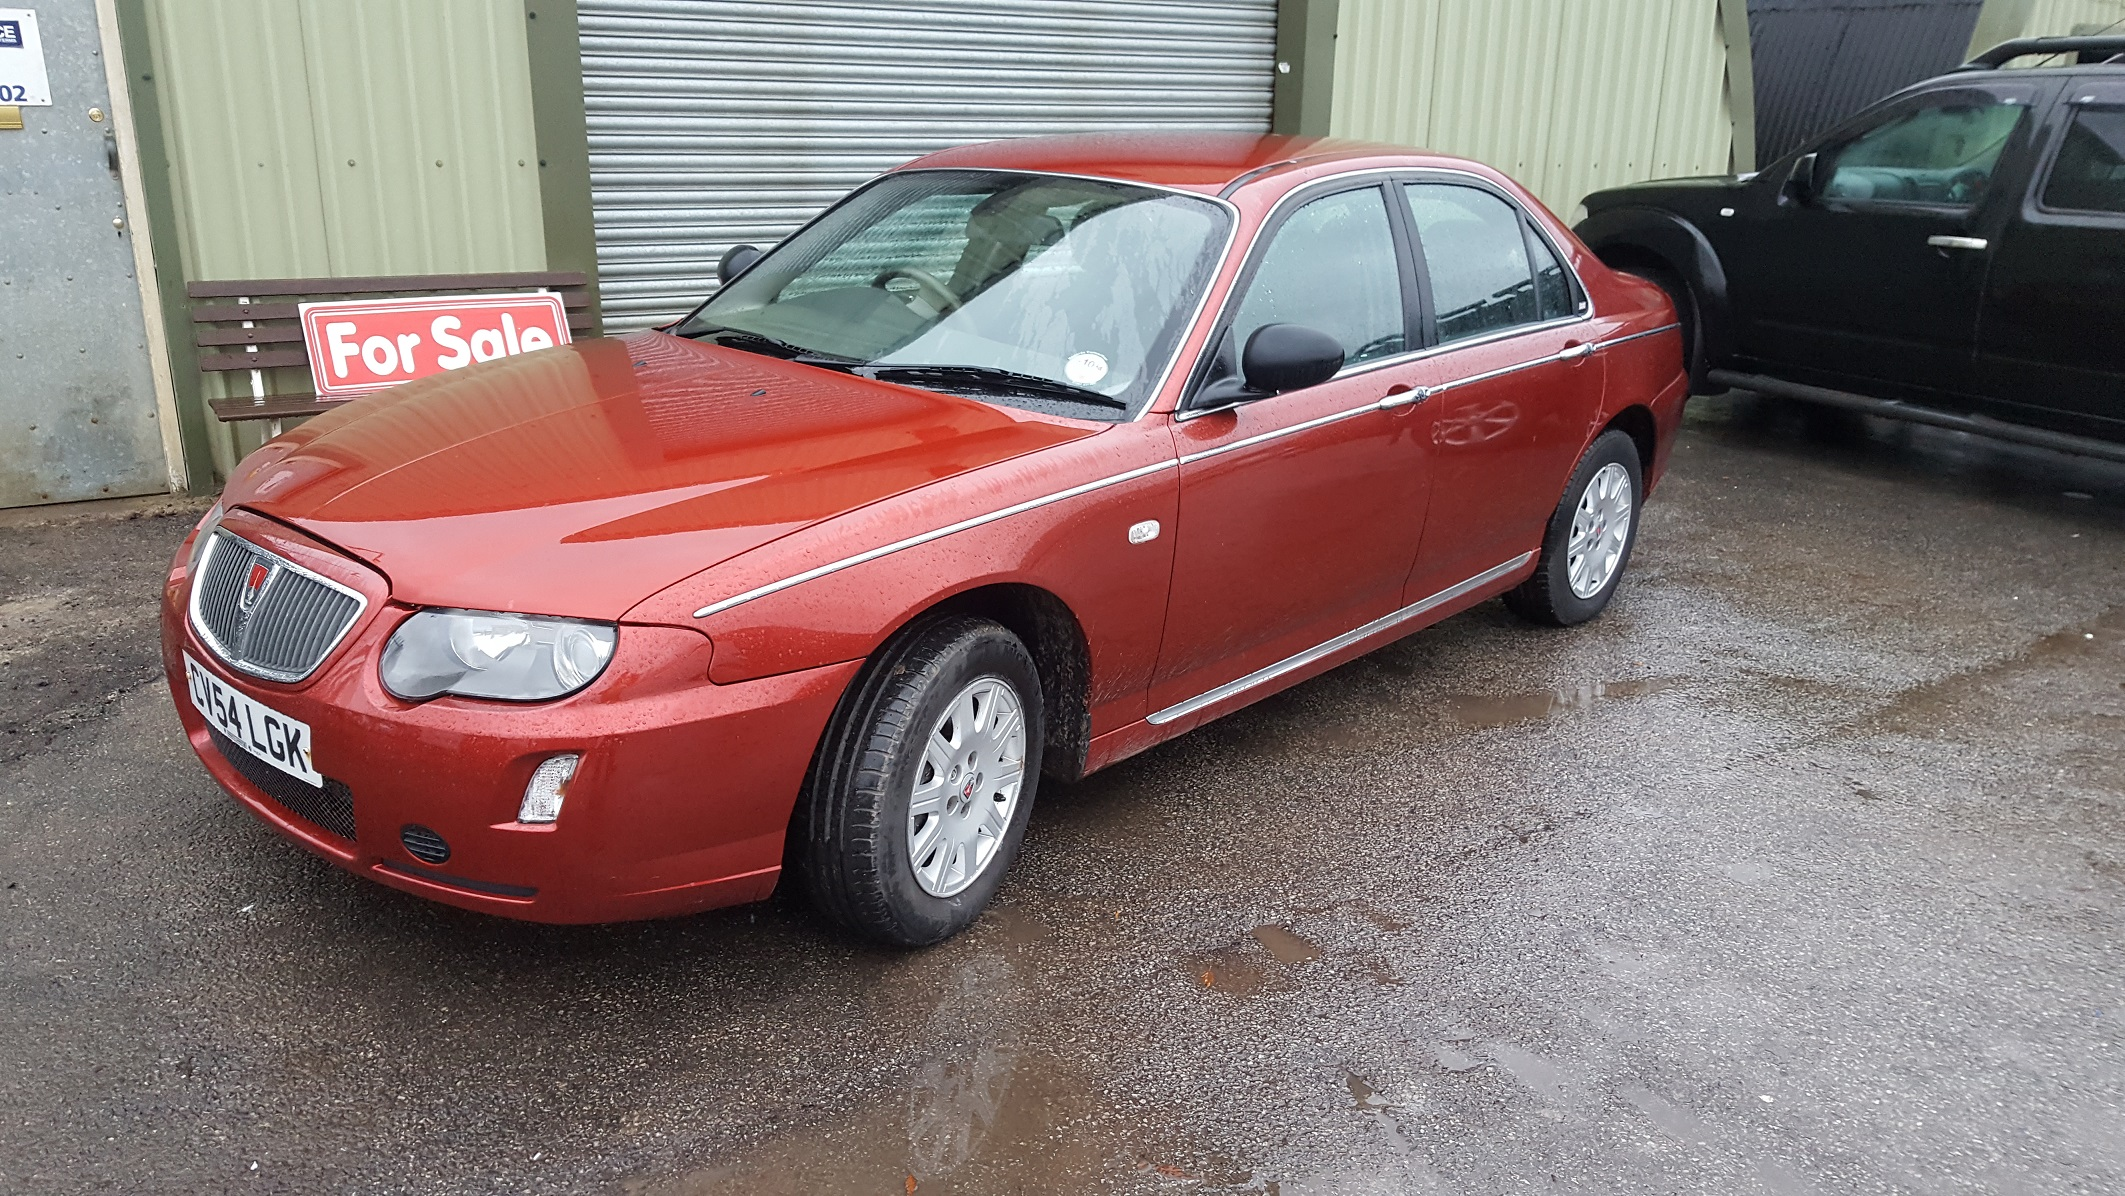 Lot 14 - LOW MILES! 2004/54 REG ROVER 75 CLASSIC RED PETROL 4 DOOR SALOON, SHOWING 1 FORMER KEEPER *NO VAT*